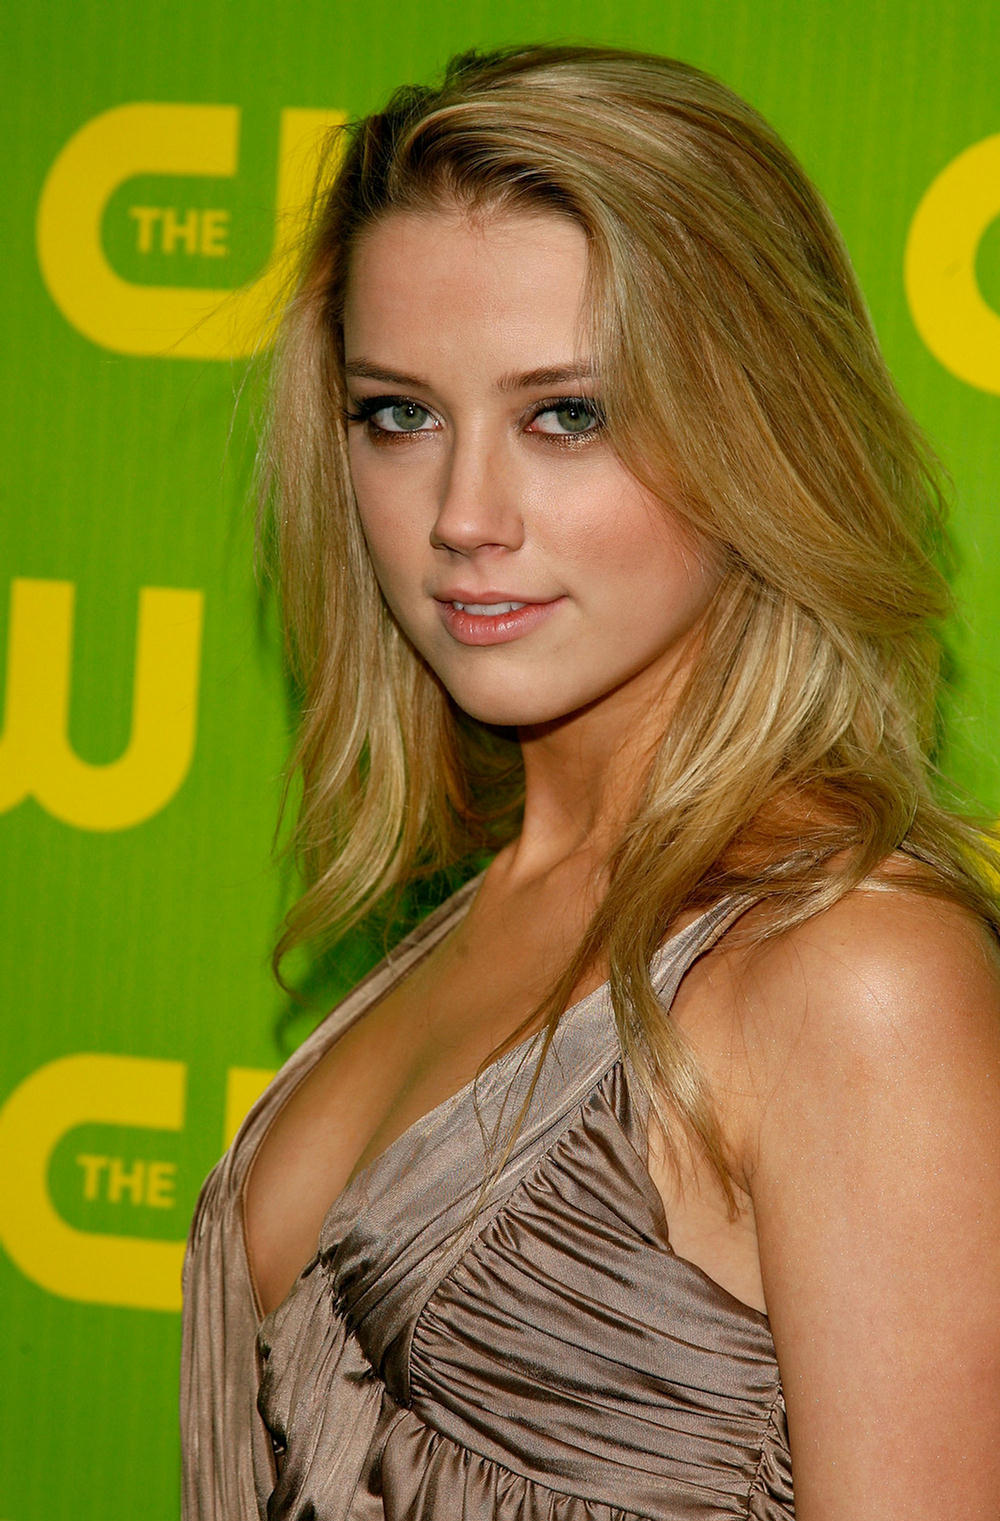 Amber Heard Is The Most Scientifically Beautiful Woman: Amber Heard Summary